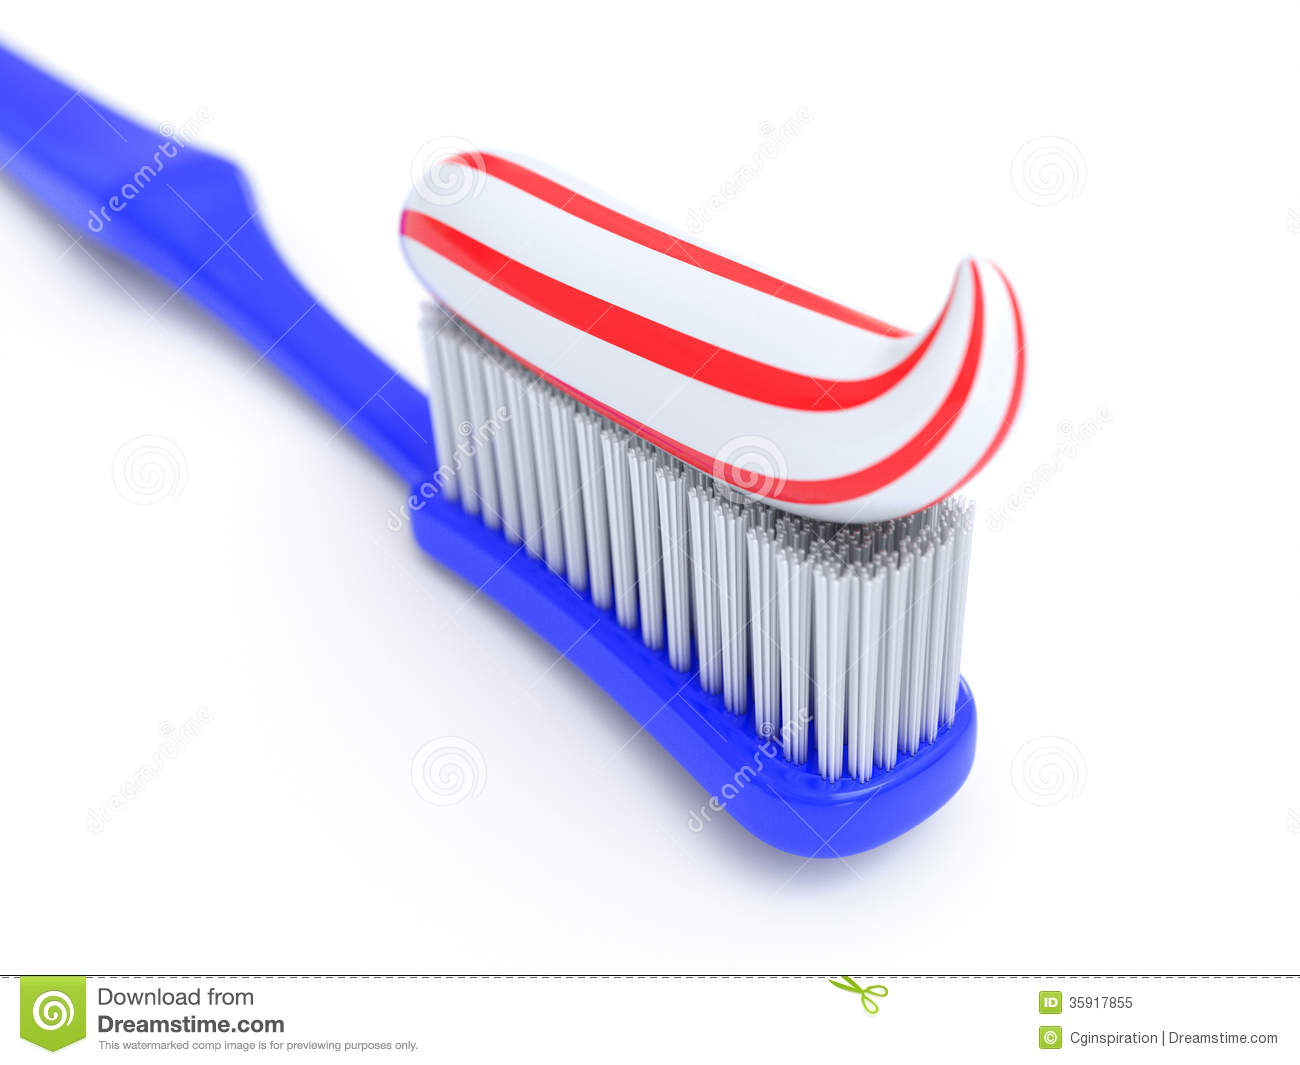 Toothbrush And Toothpaste Royalty Free Stock Photo   Image  35917855